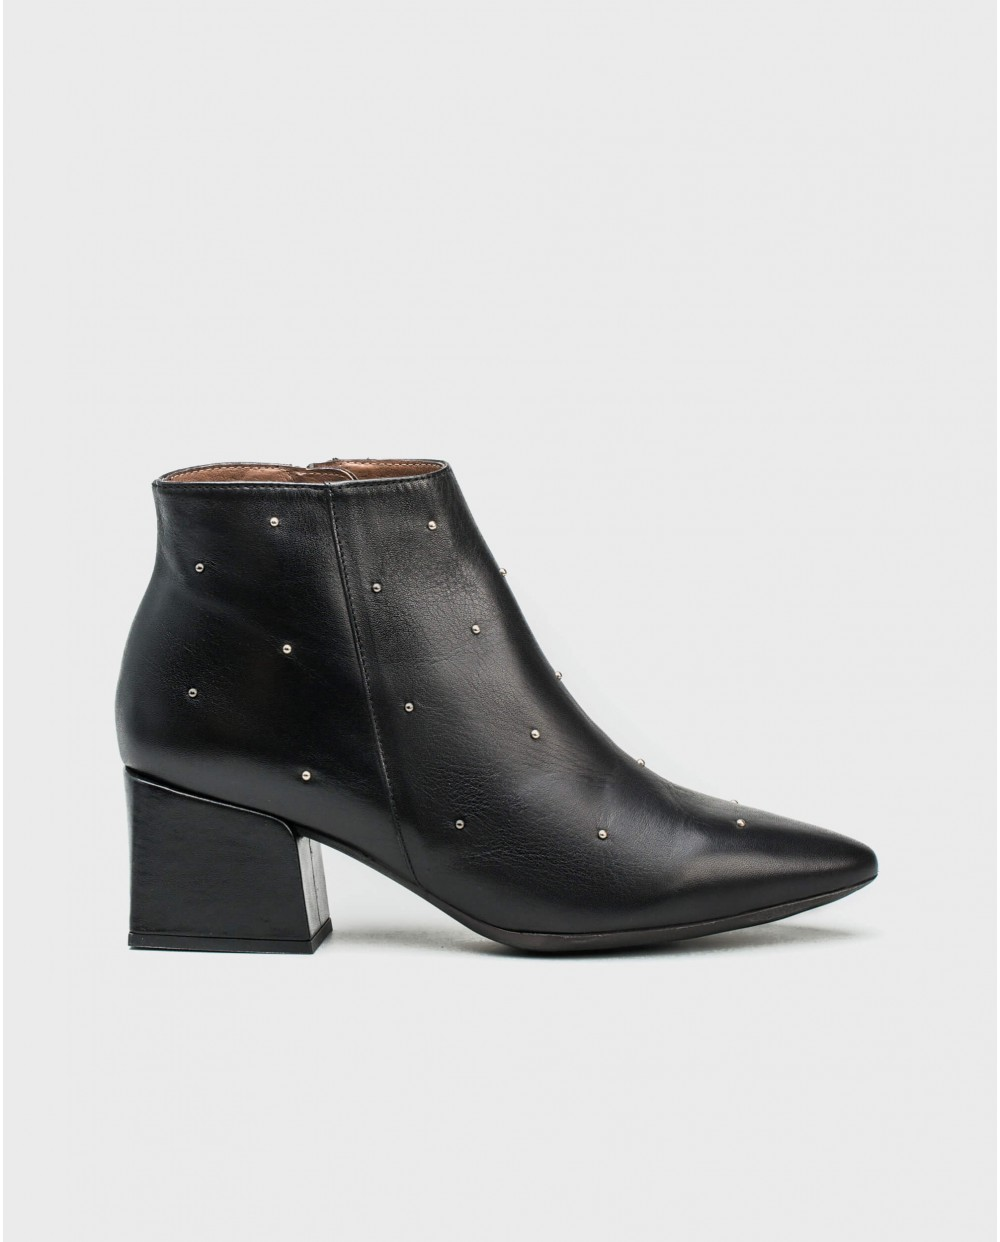 Wonders-Ankle Boots-Leather ankle boot with metallic detail